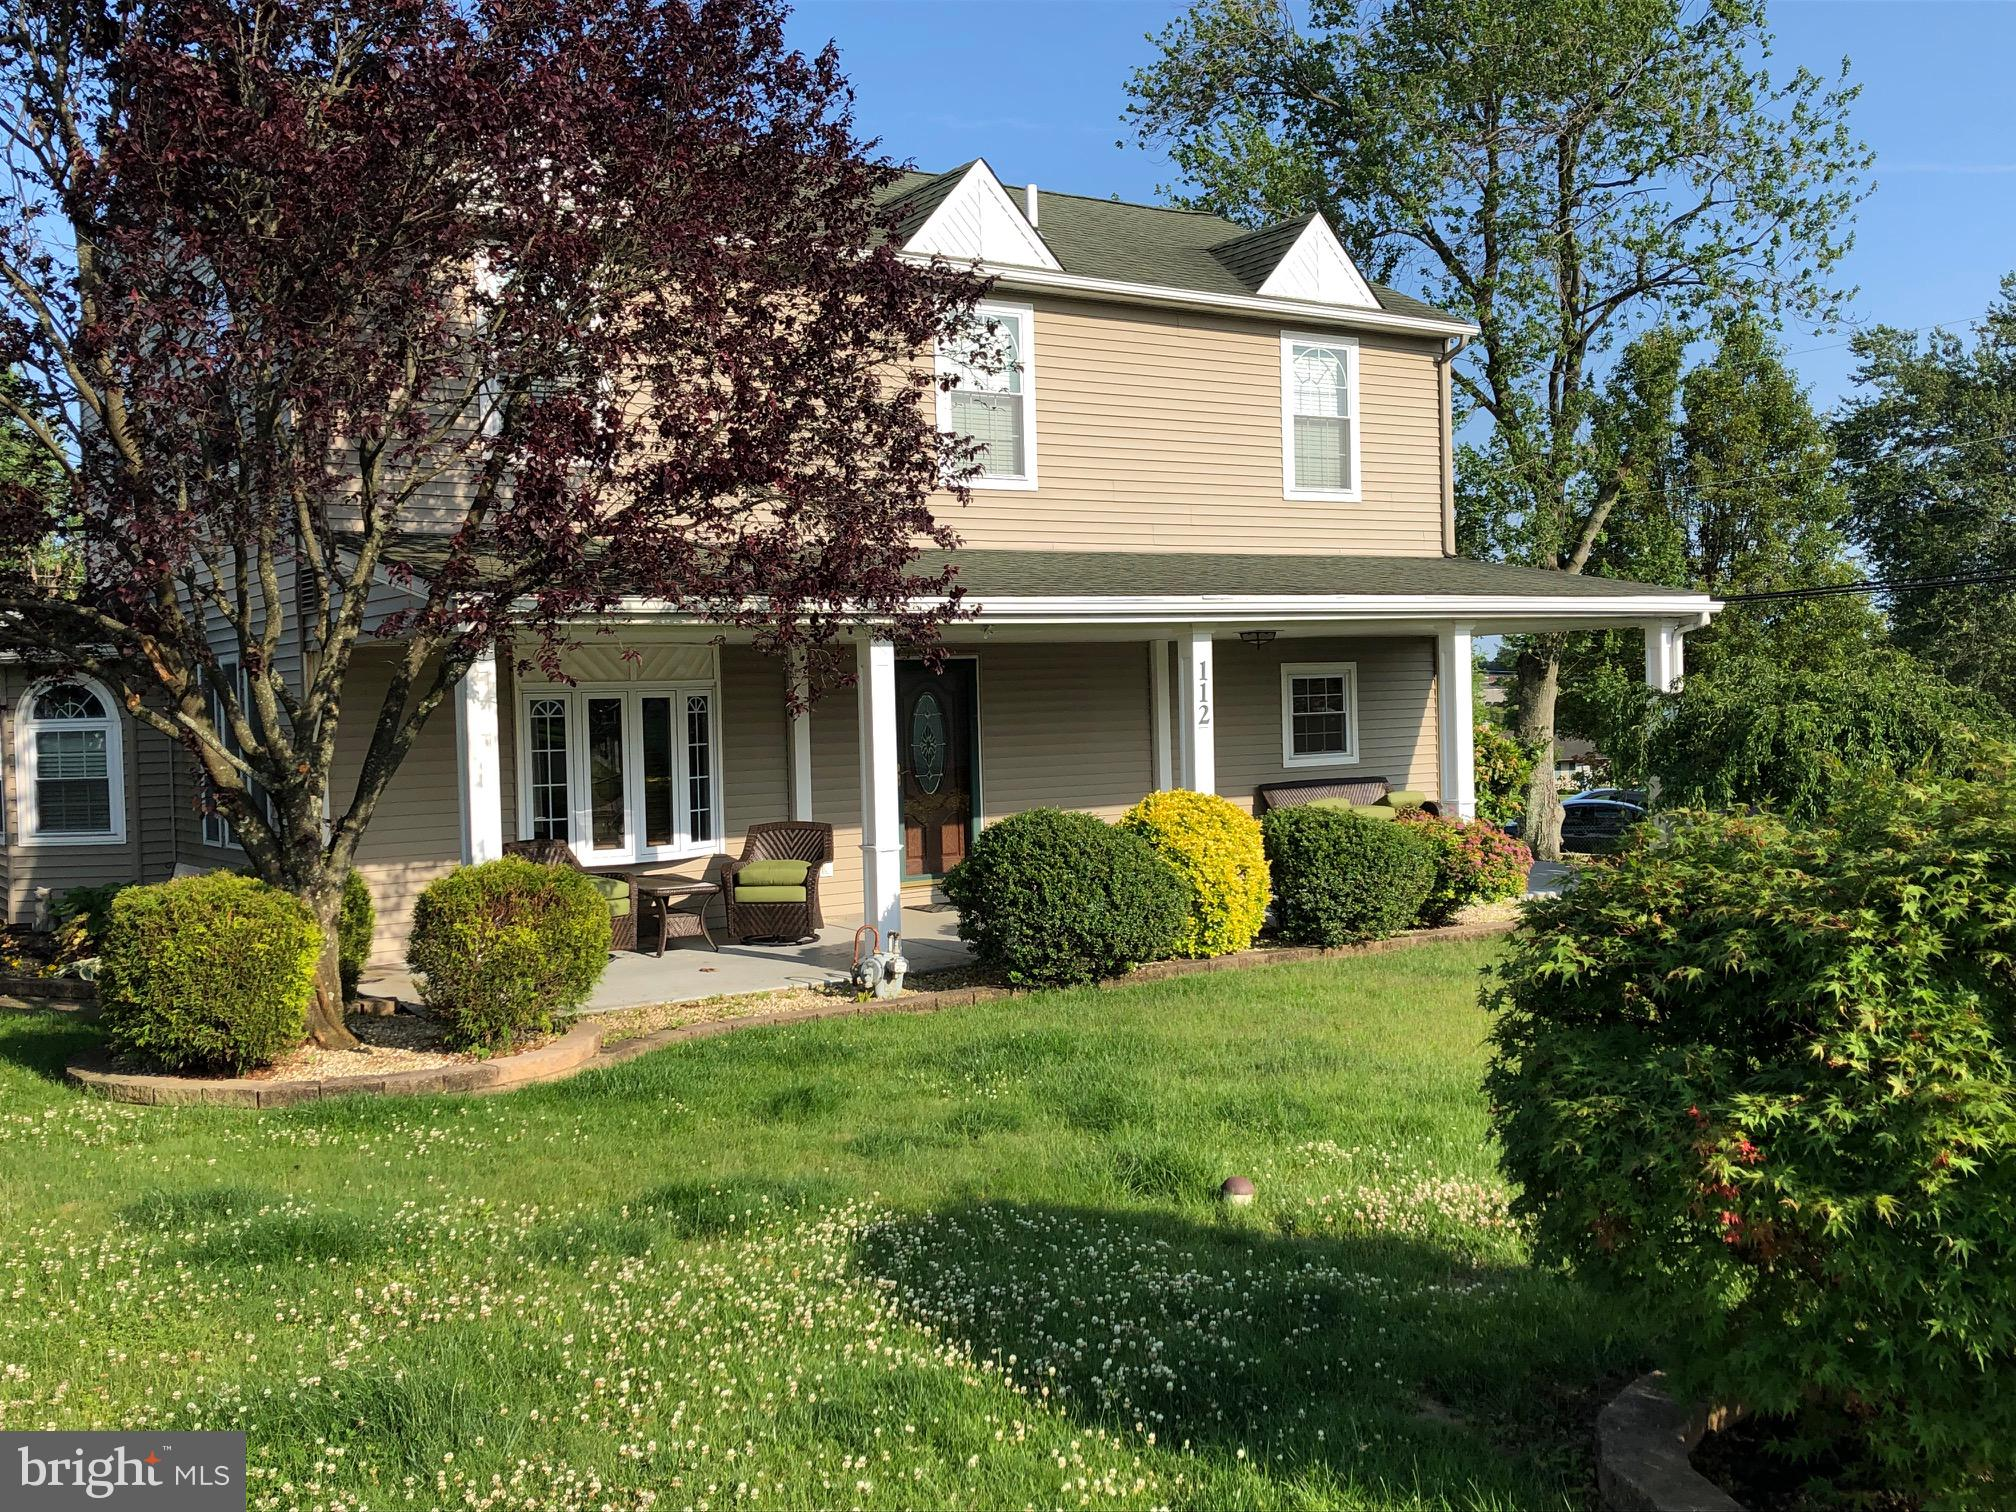 112 ELMWOOD ROAD, FAIRLESS HILLS, PA 19030